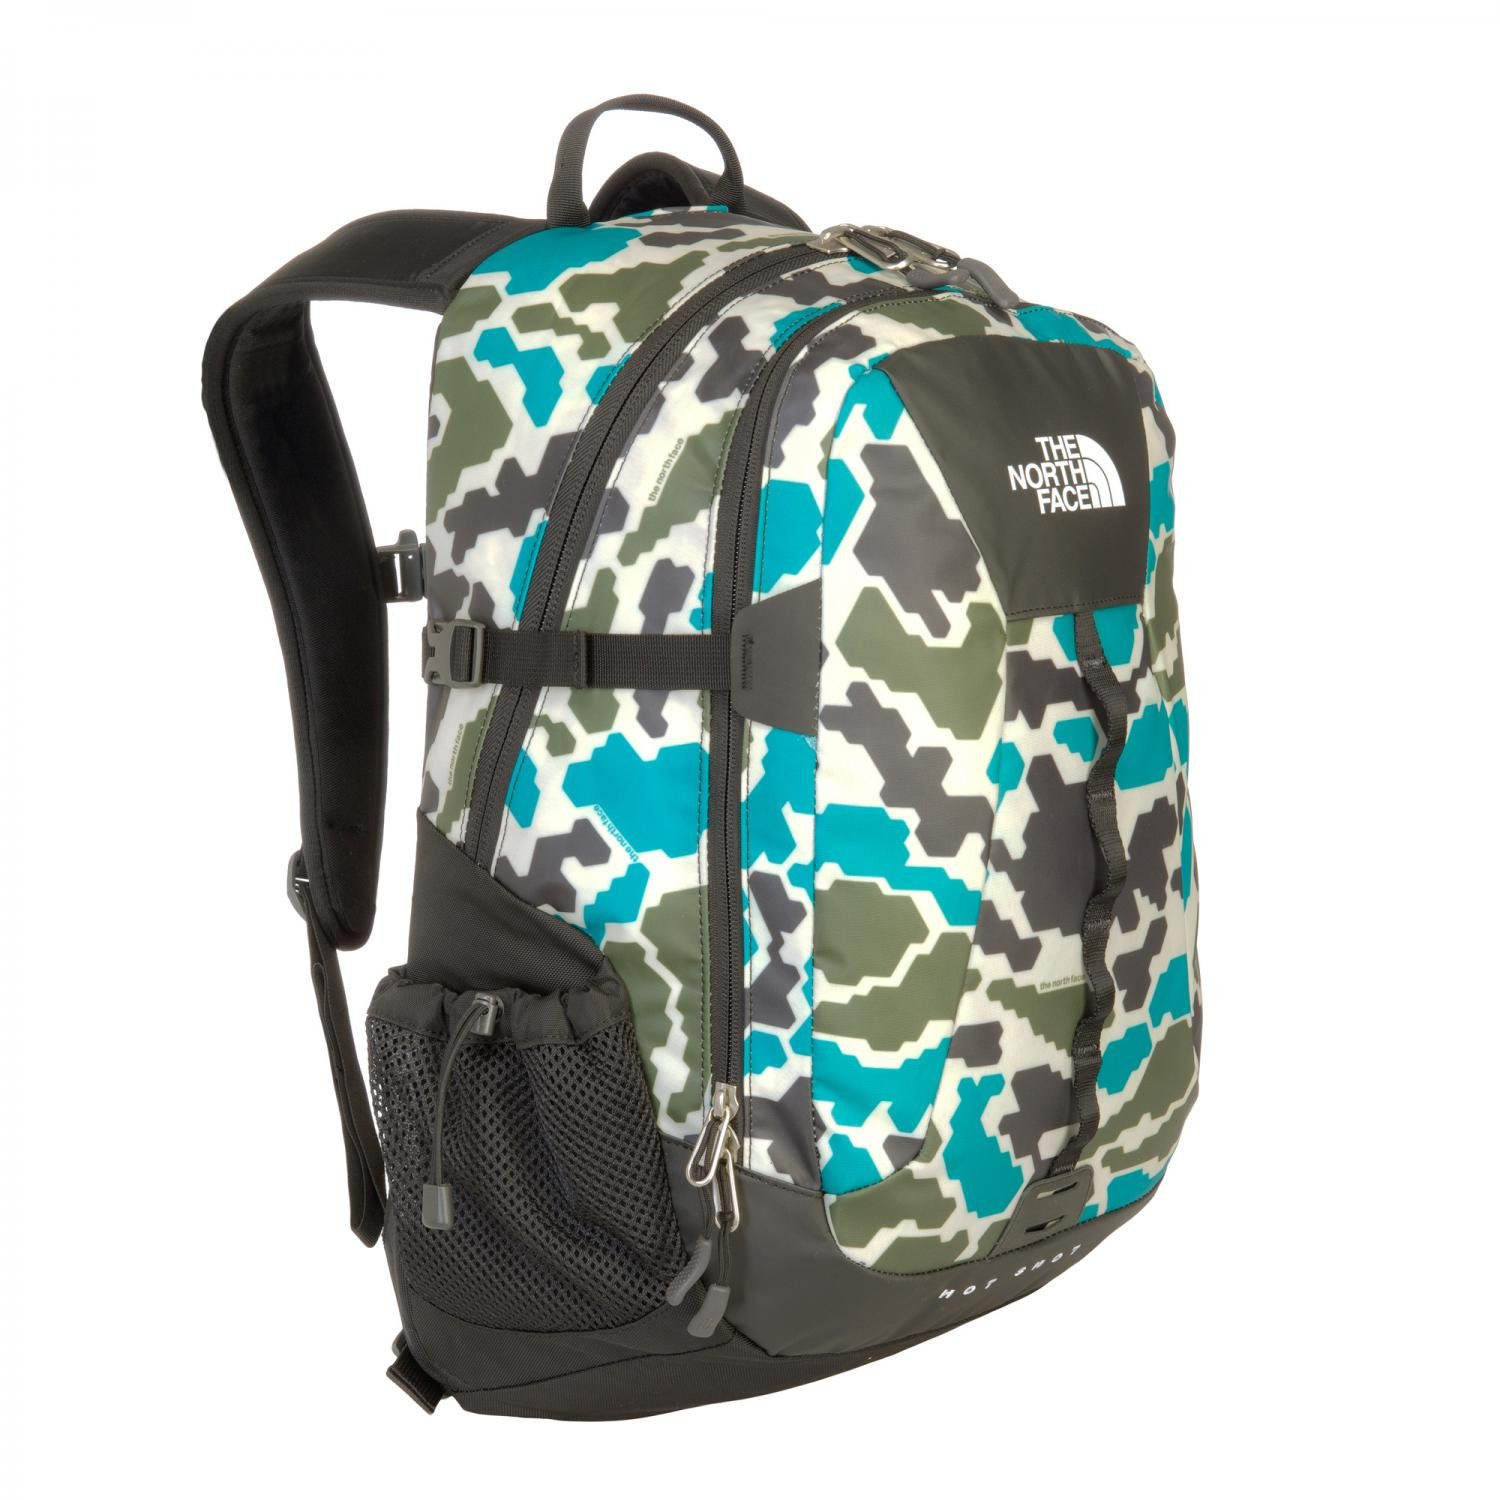 f41cd1098 The North Face Base Camp Hot Shot Daypack - Jaiden Green Duckmo Print, One  Size: Amazon.co.uk: Sports & Outdoors